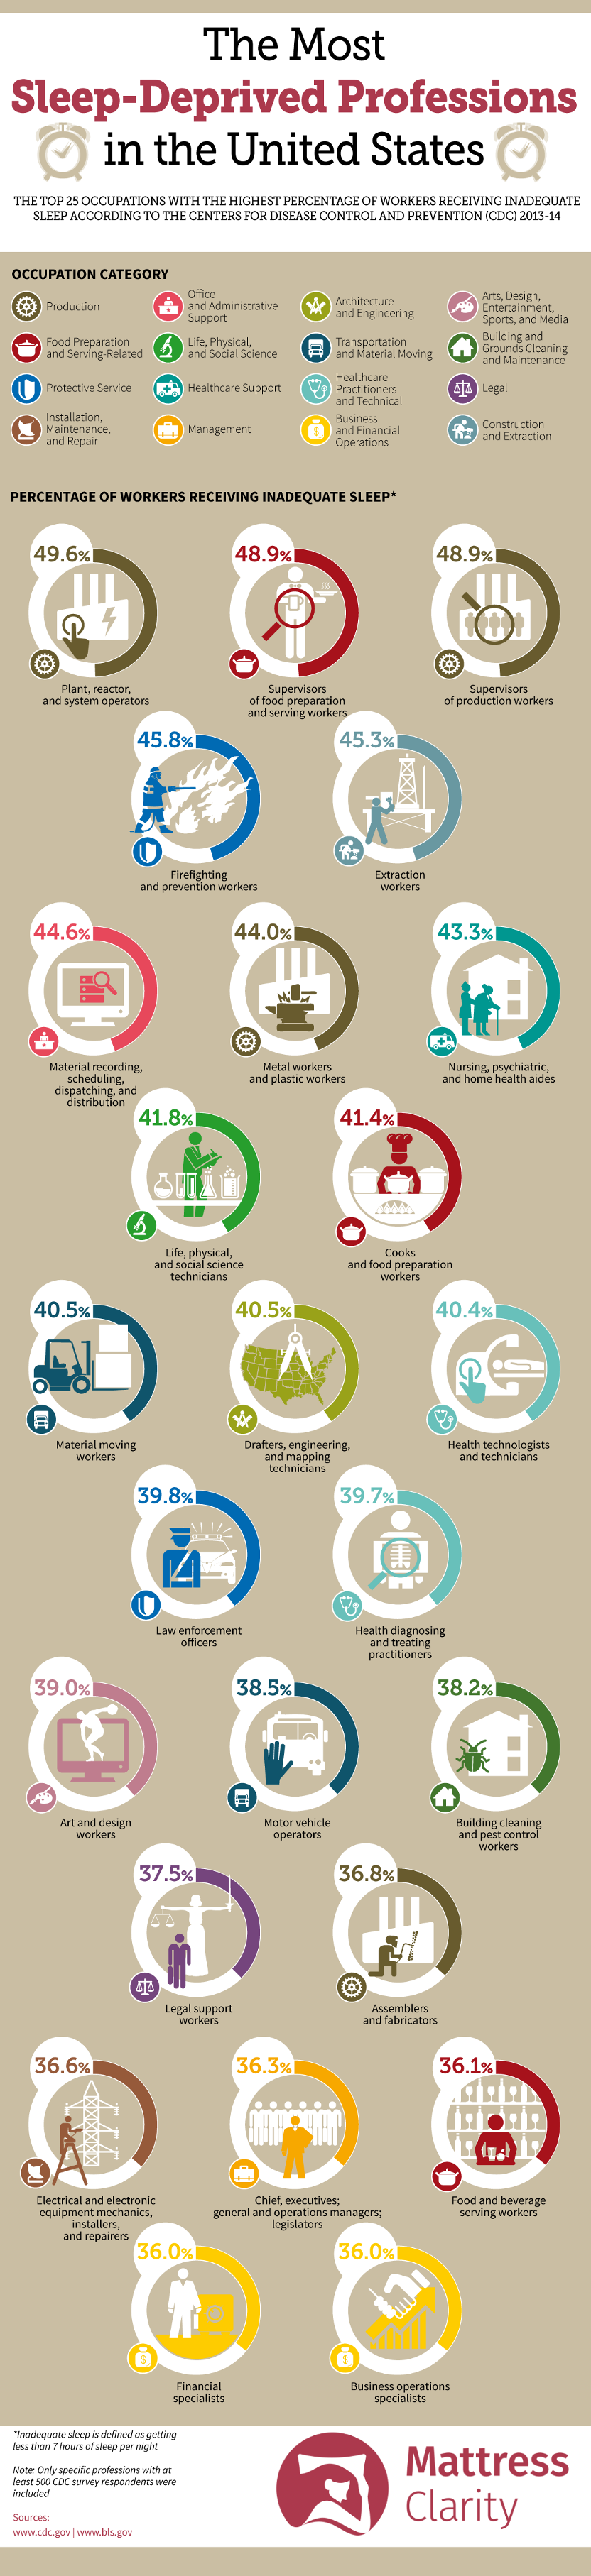 Most Sleep-Deprived Professions